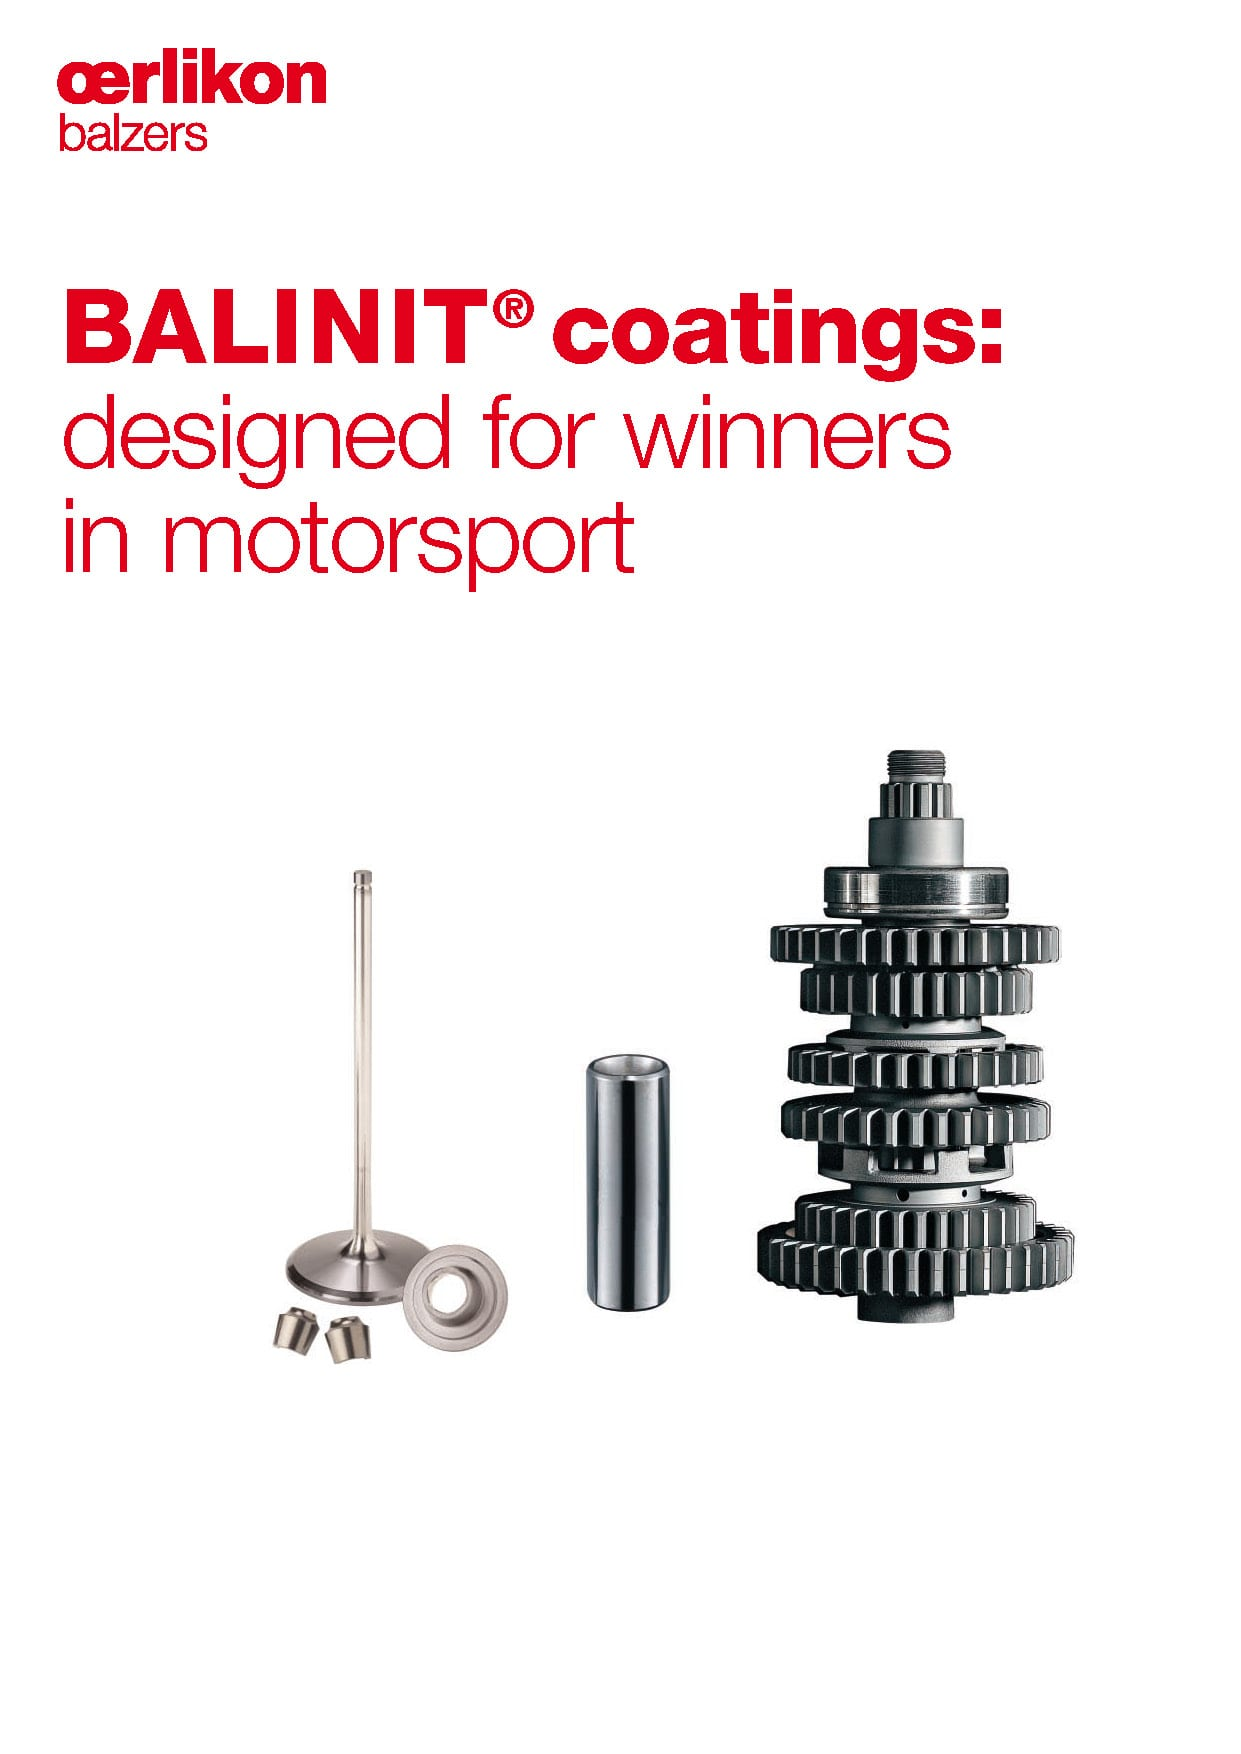 BALINIT® coatings: designed for winners in motorsport